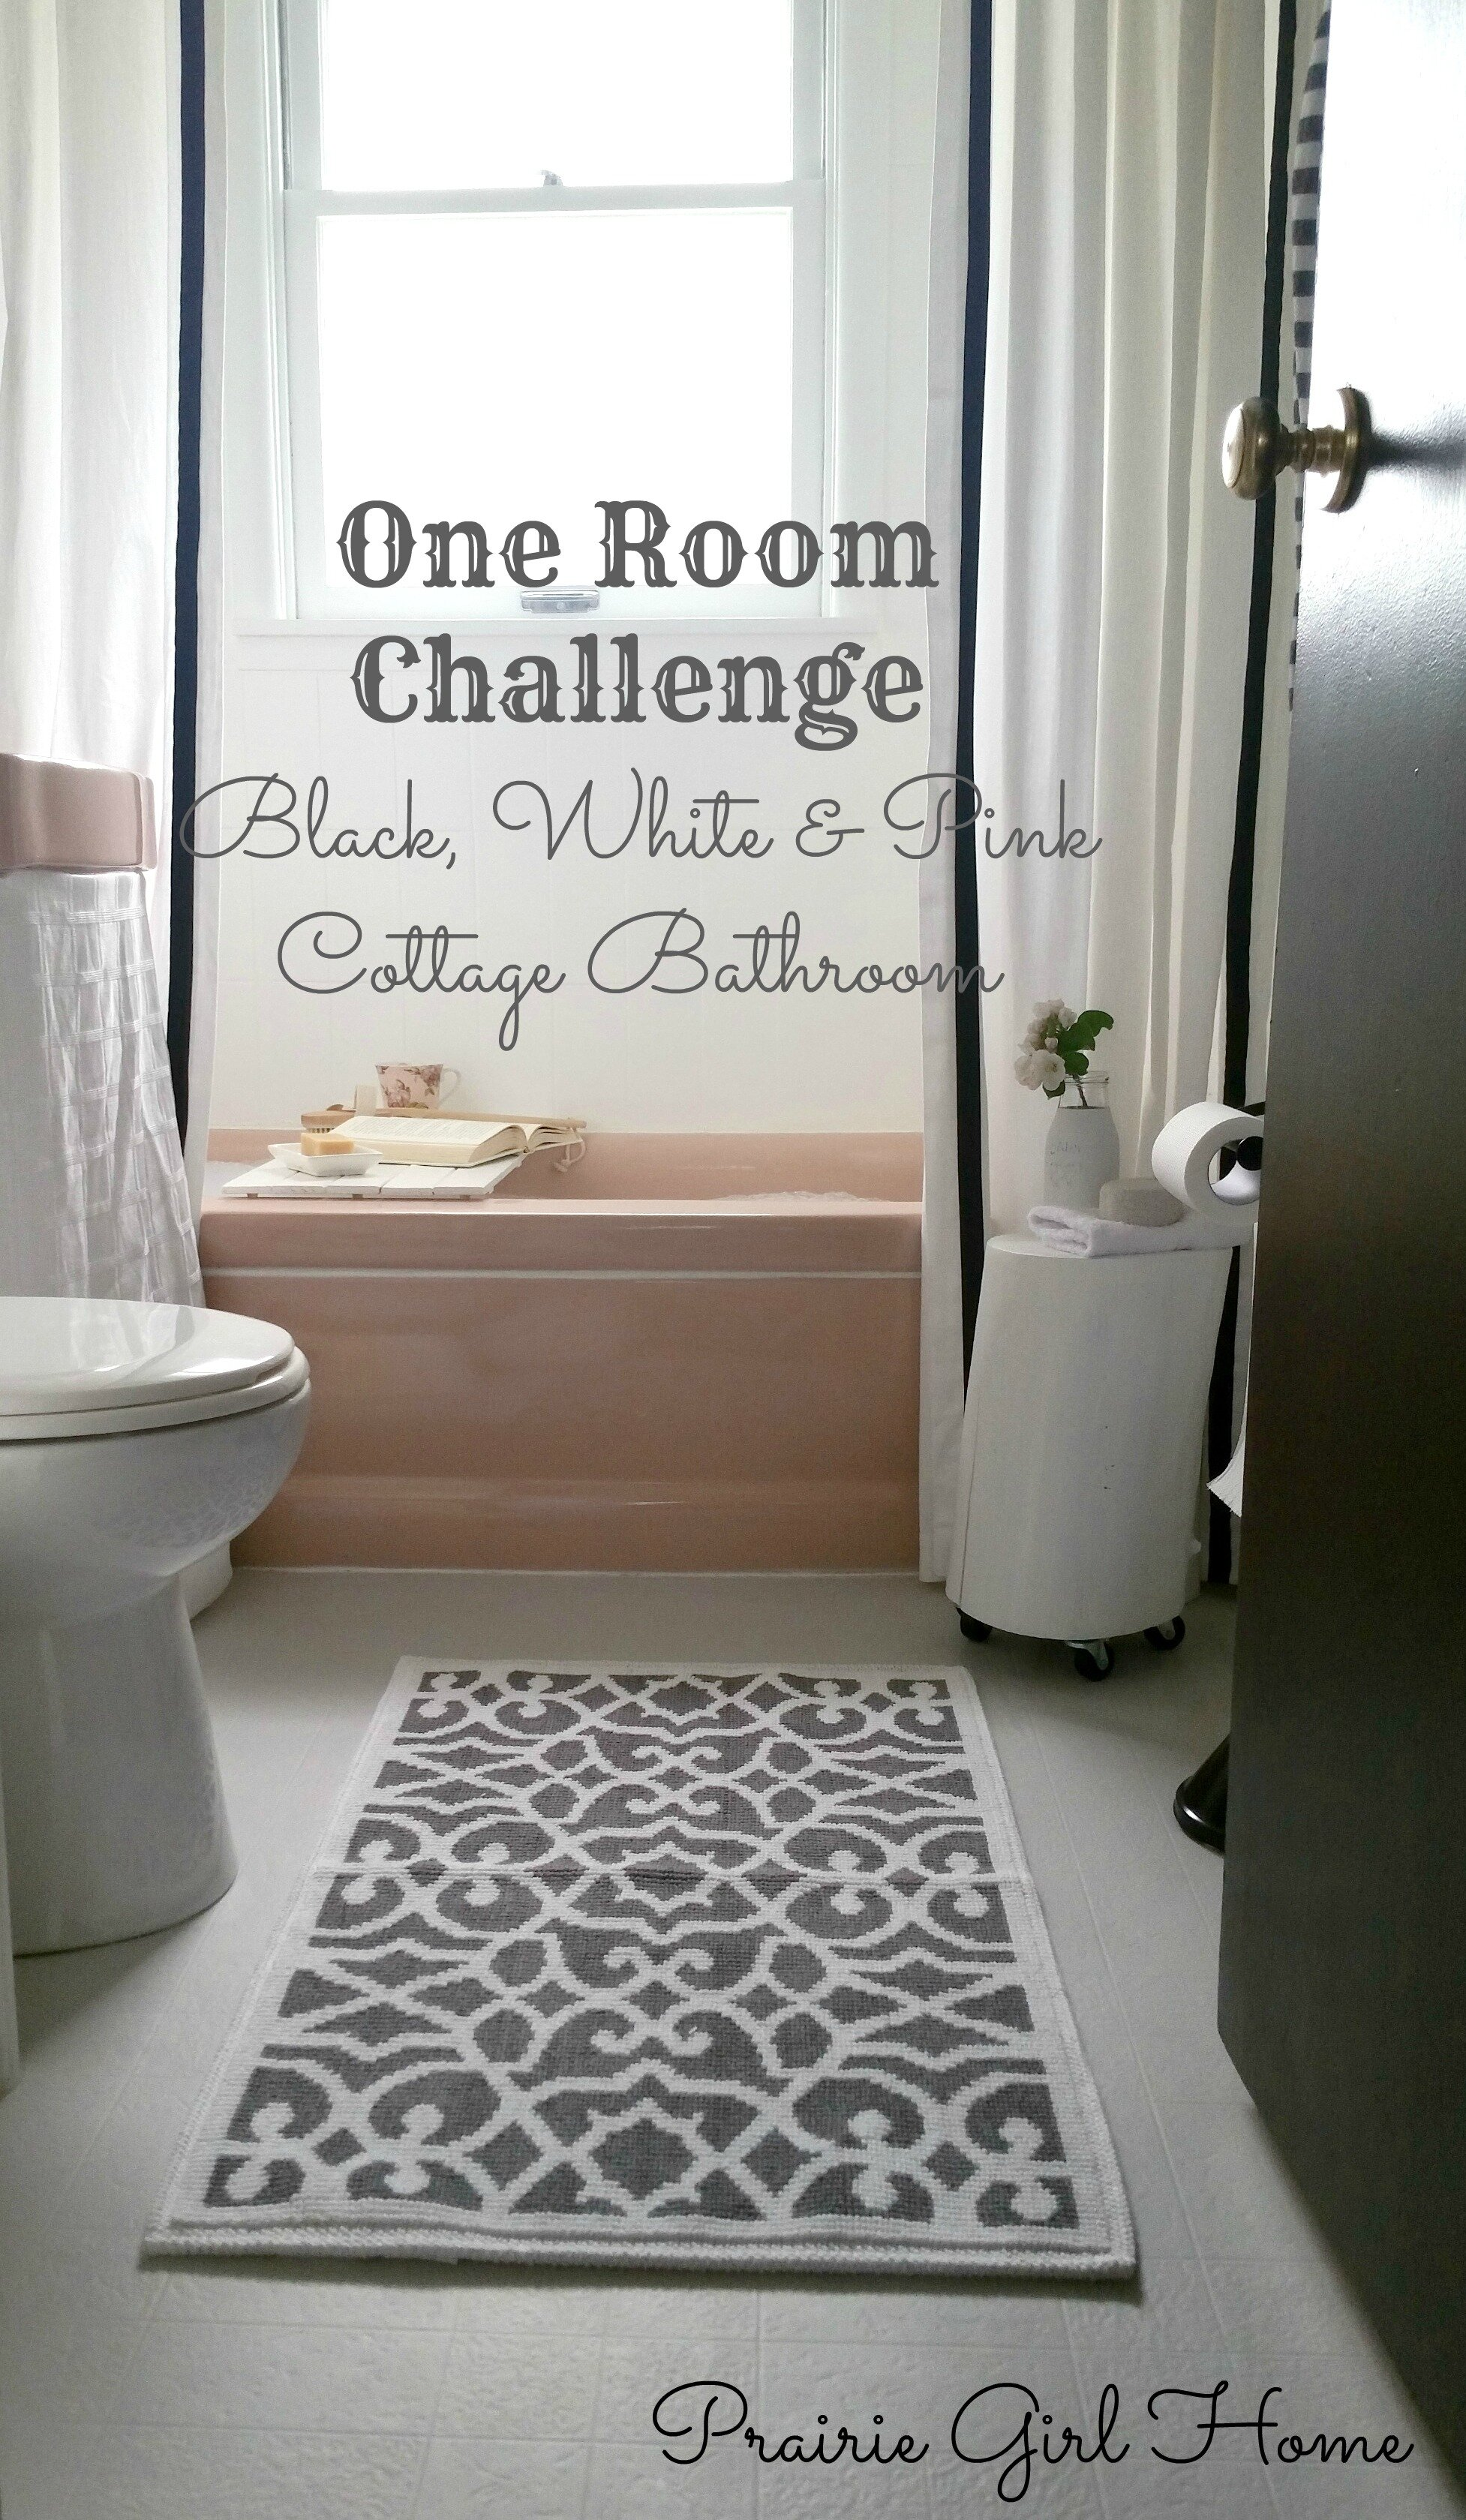 One Room Challenge Week 6 A Glam Cottage Bathroom Reveal